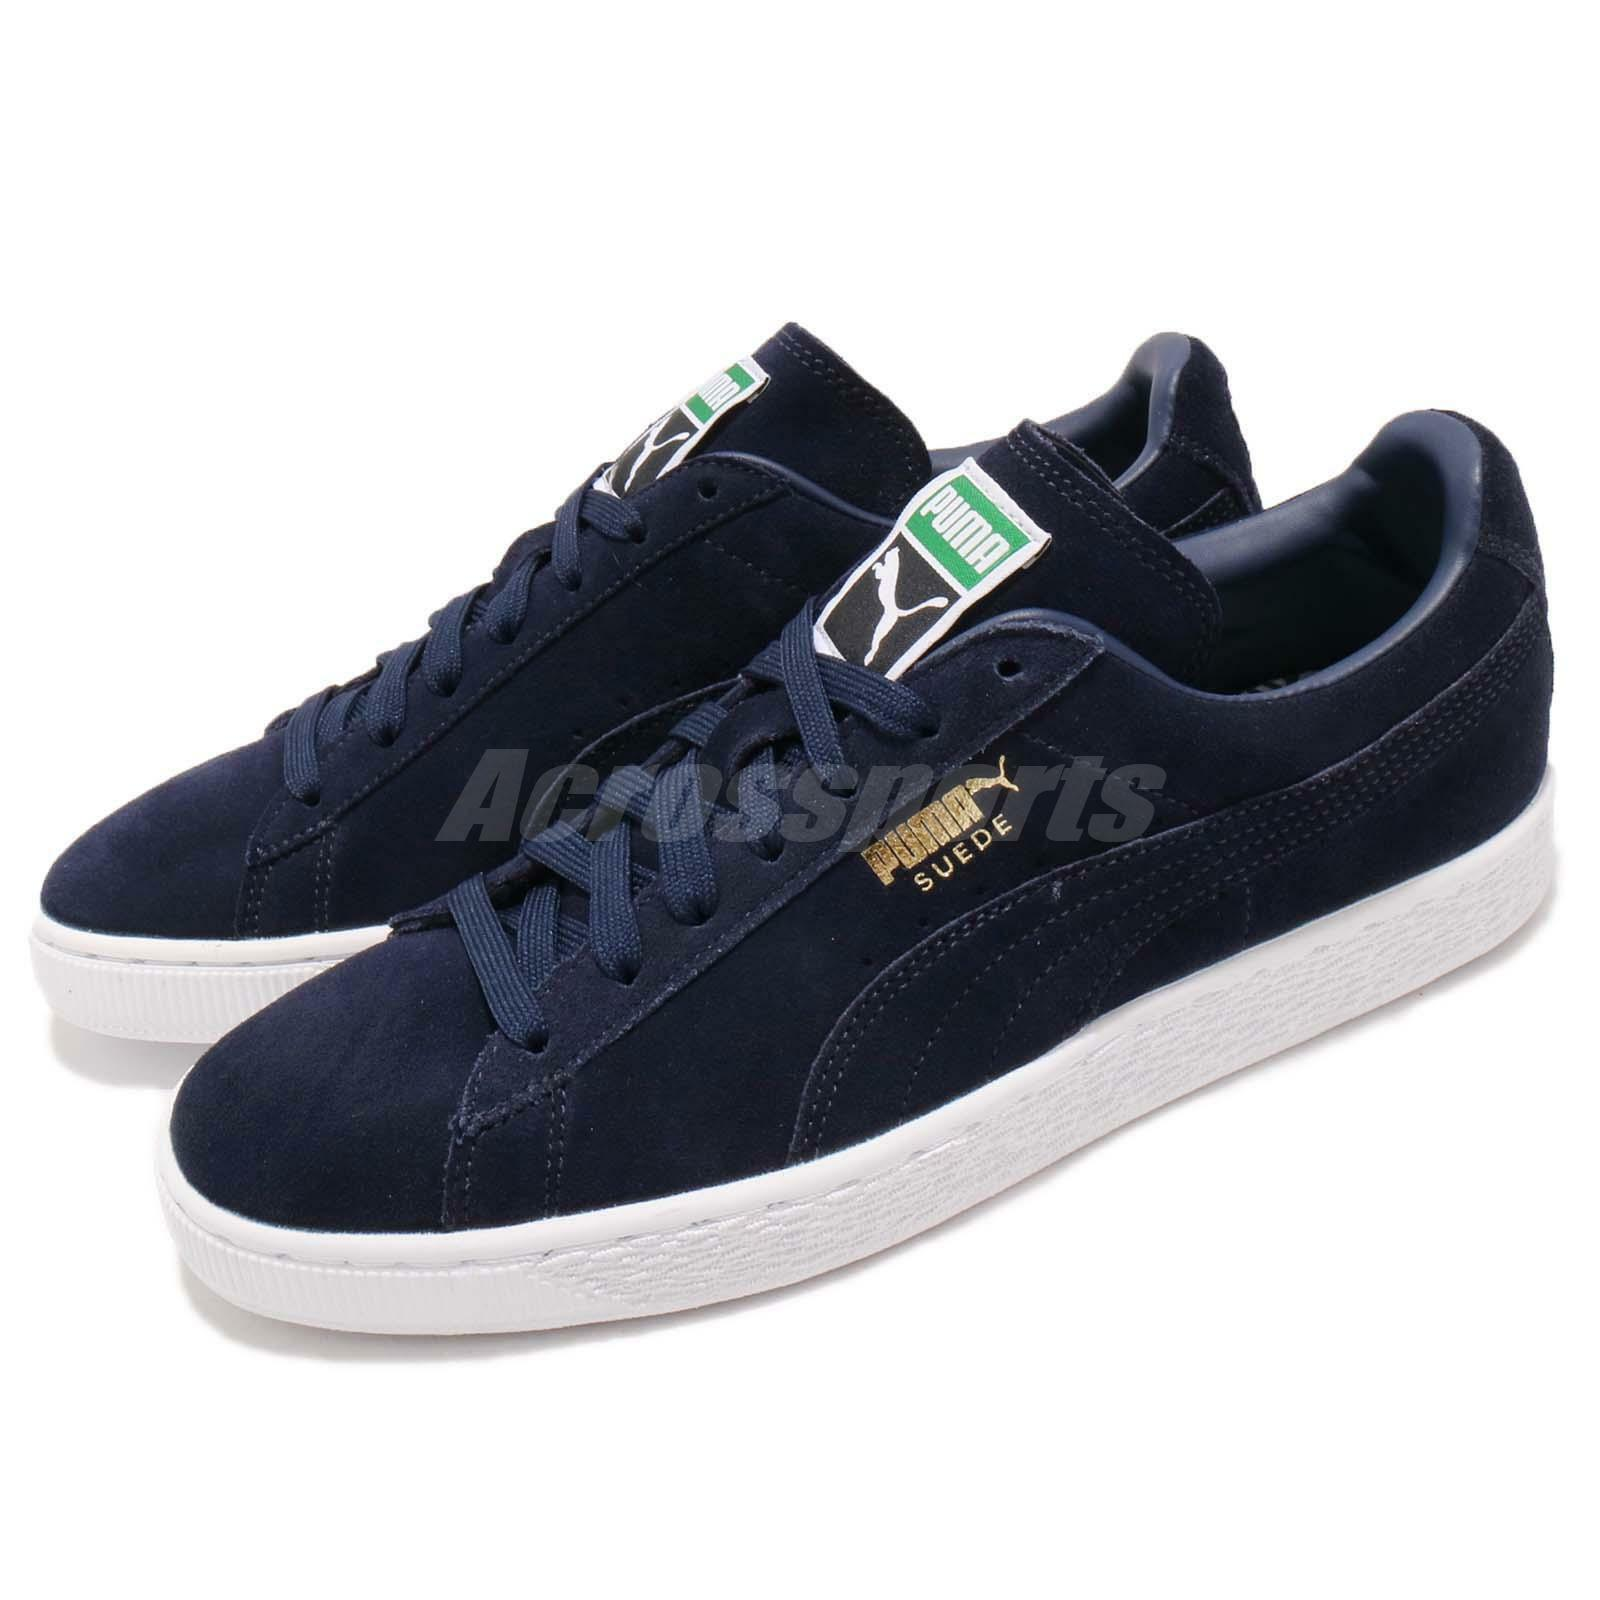 Puma Suede Classic Peacoat Navy White Gold Men Casual Shoes Sneakers 356568 52